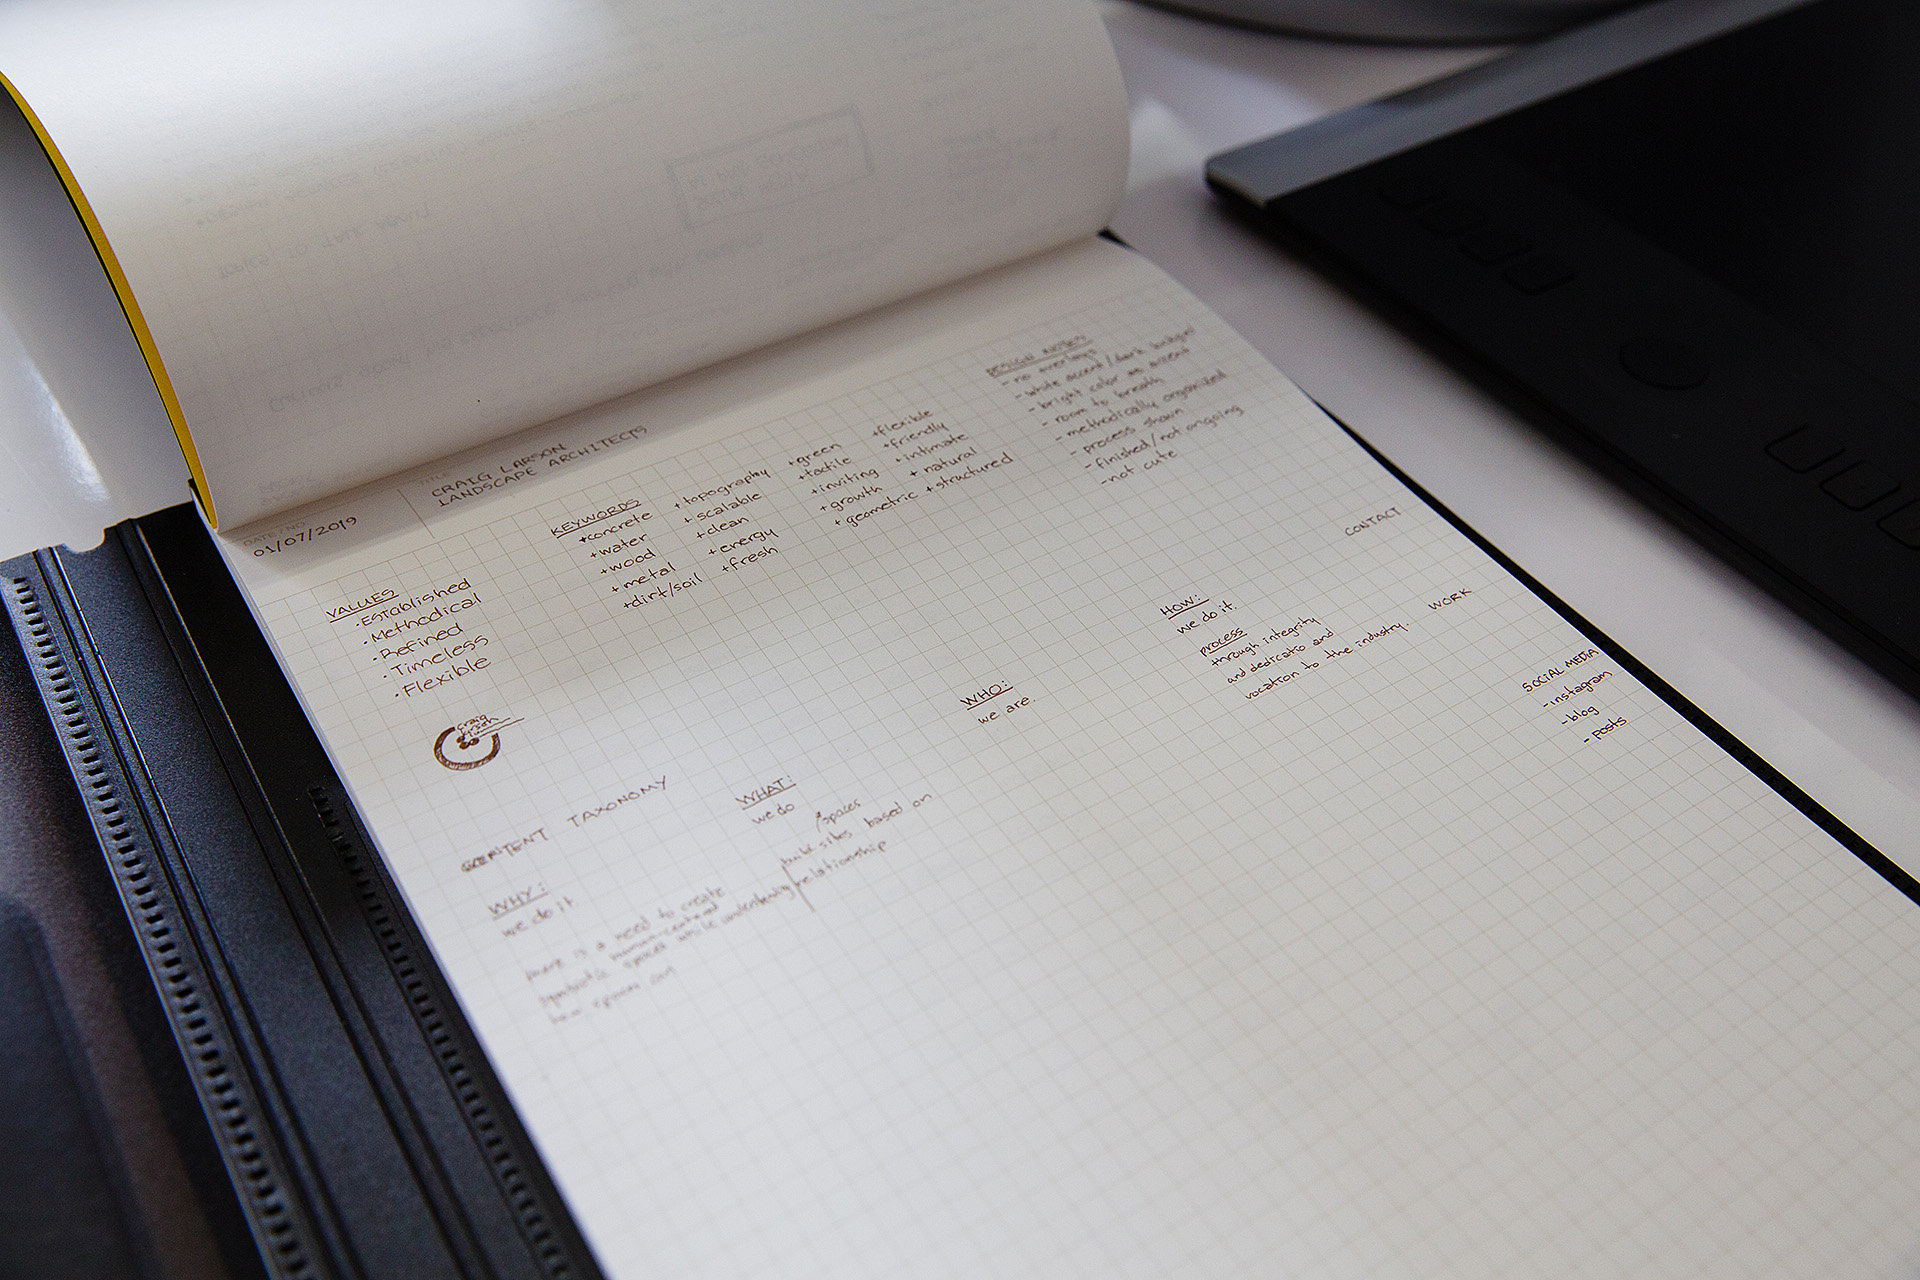 Close-up of notepad displaying site structure for CLLA website